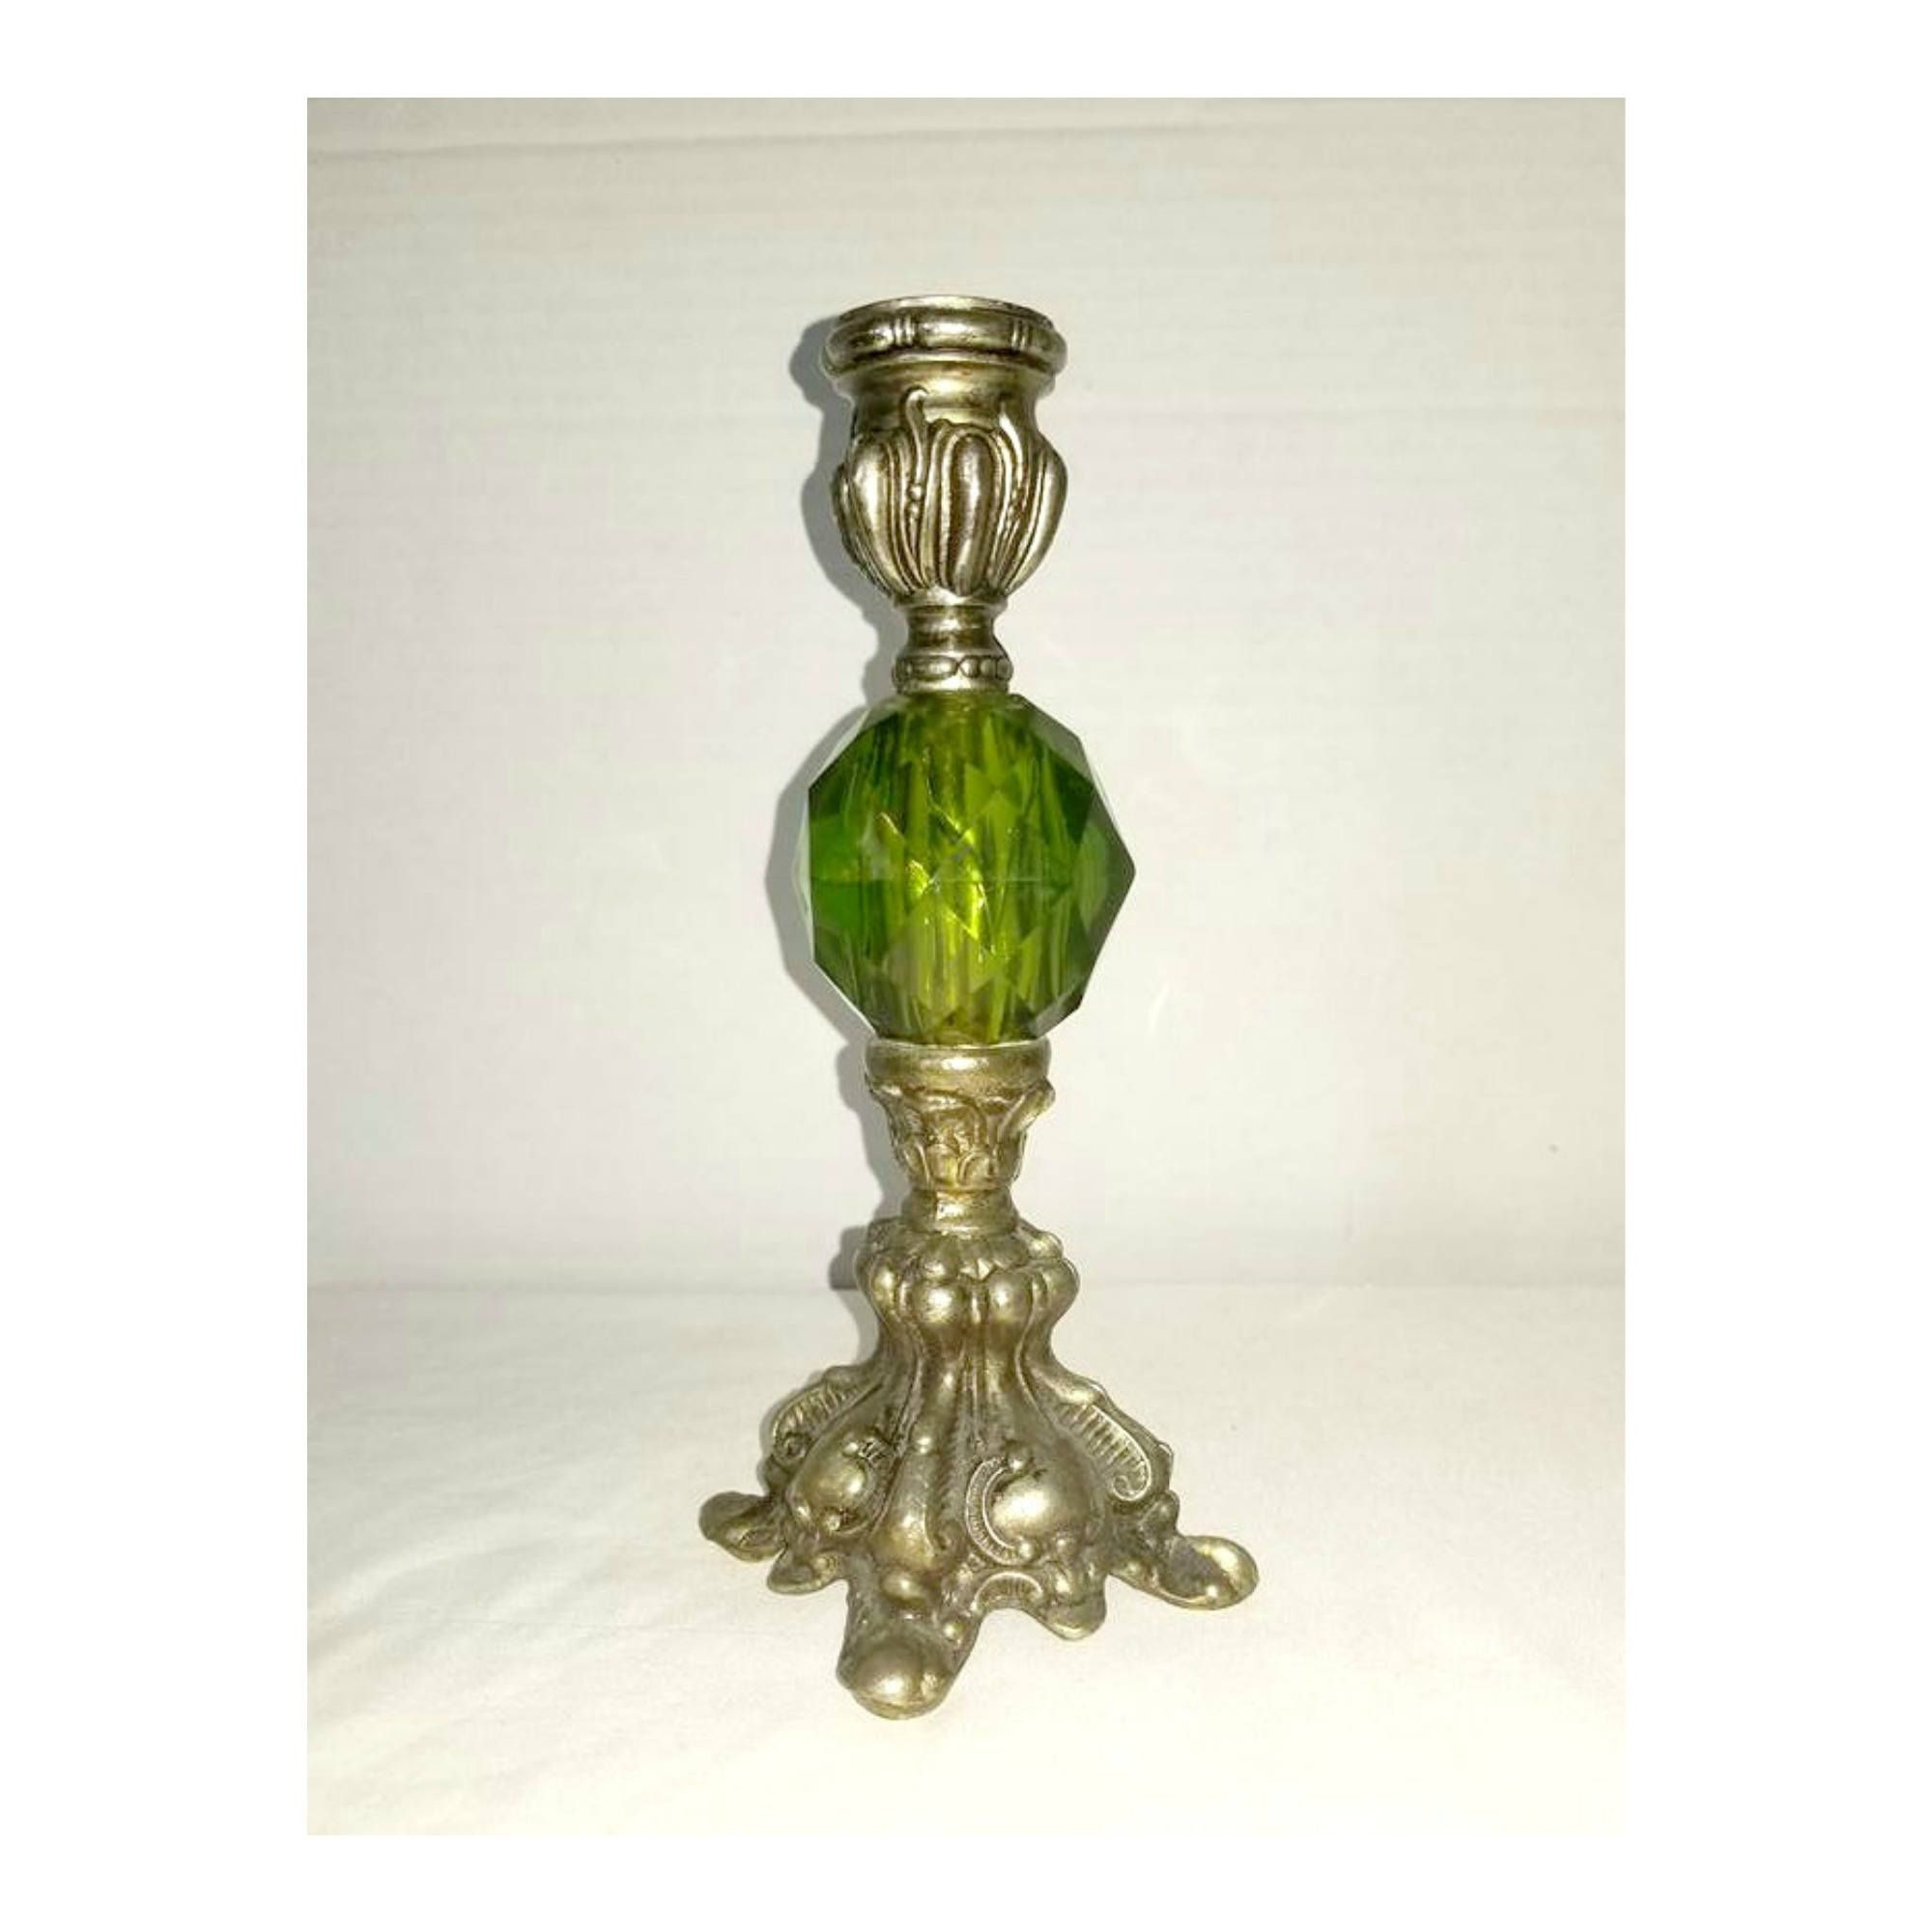 Vintage Green Glass And Silver Candle Holder,Green Candle Holder,Victorian Candle